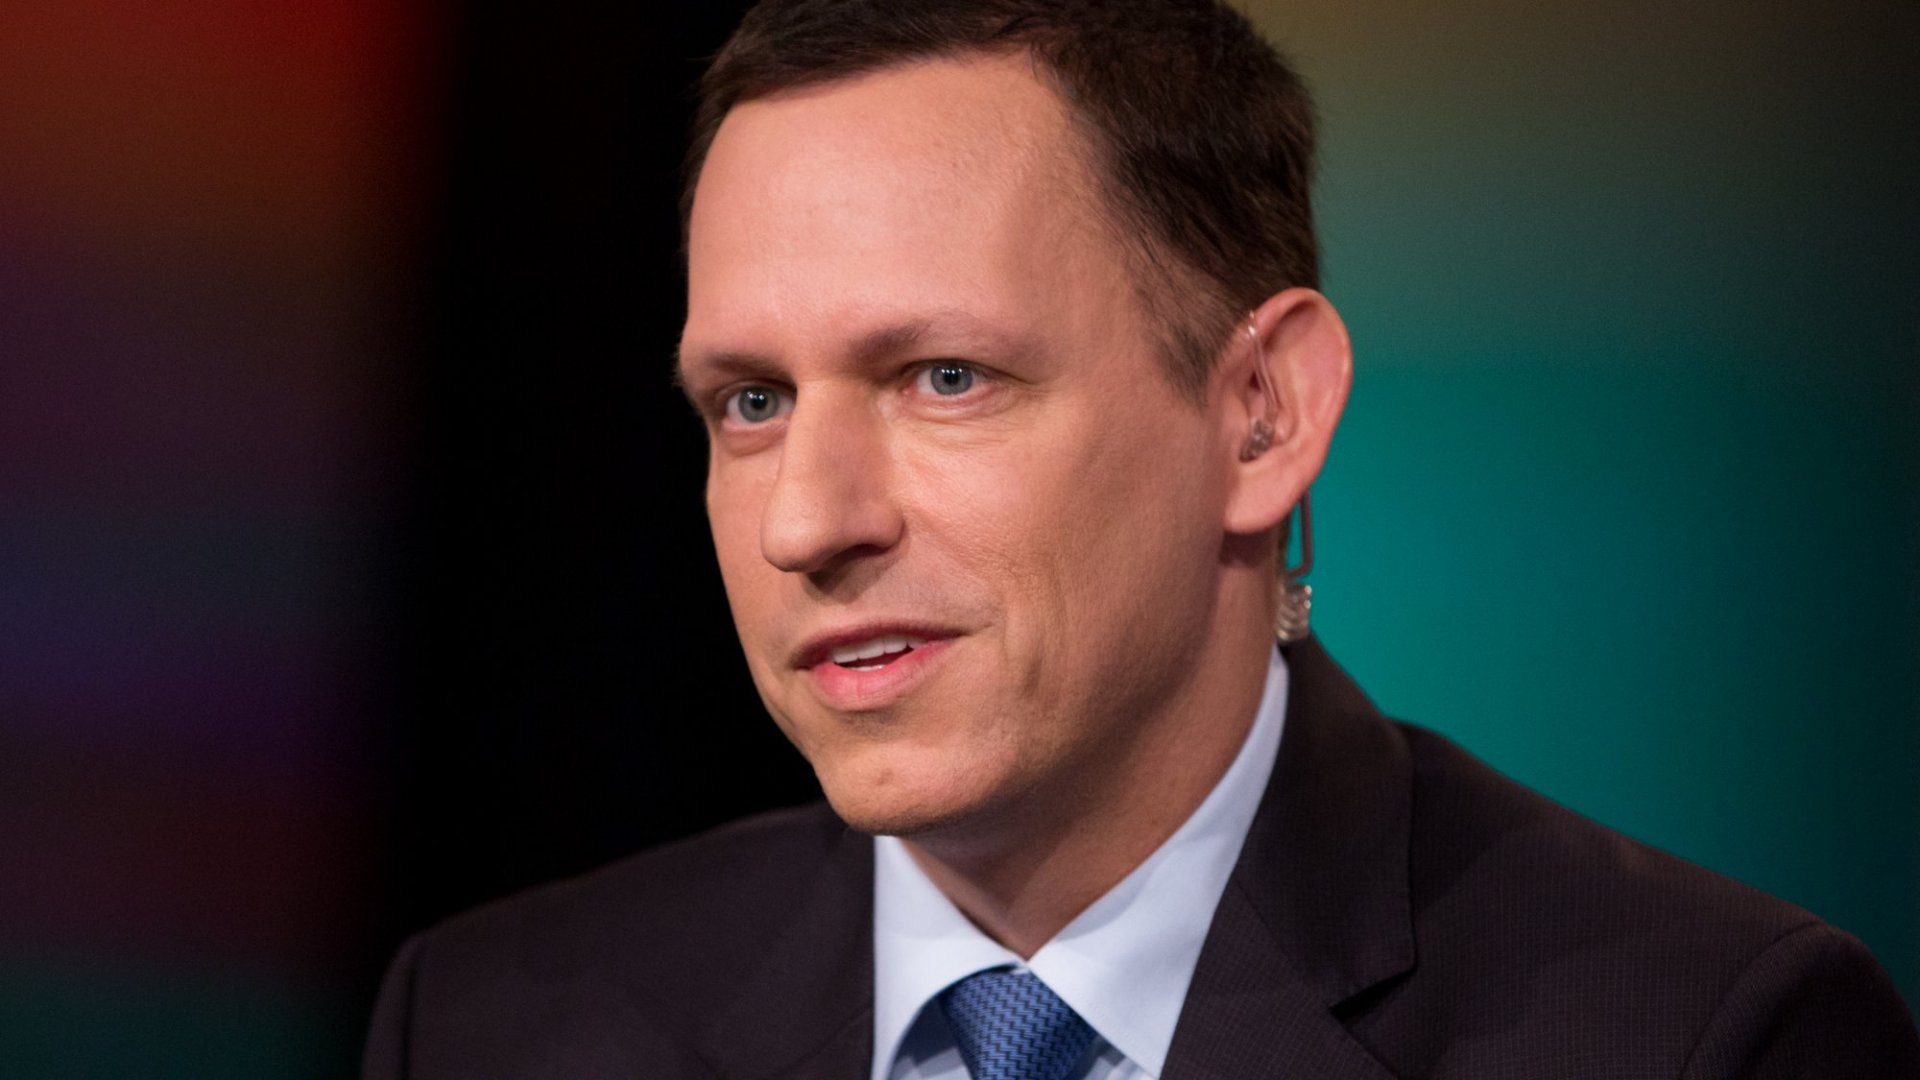 Why Peter Thiel Would Be a Truly Scary Supreme Court Justice